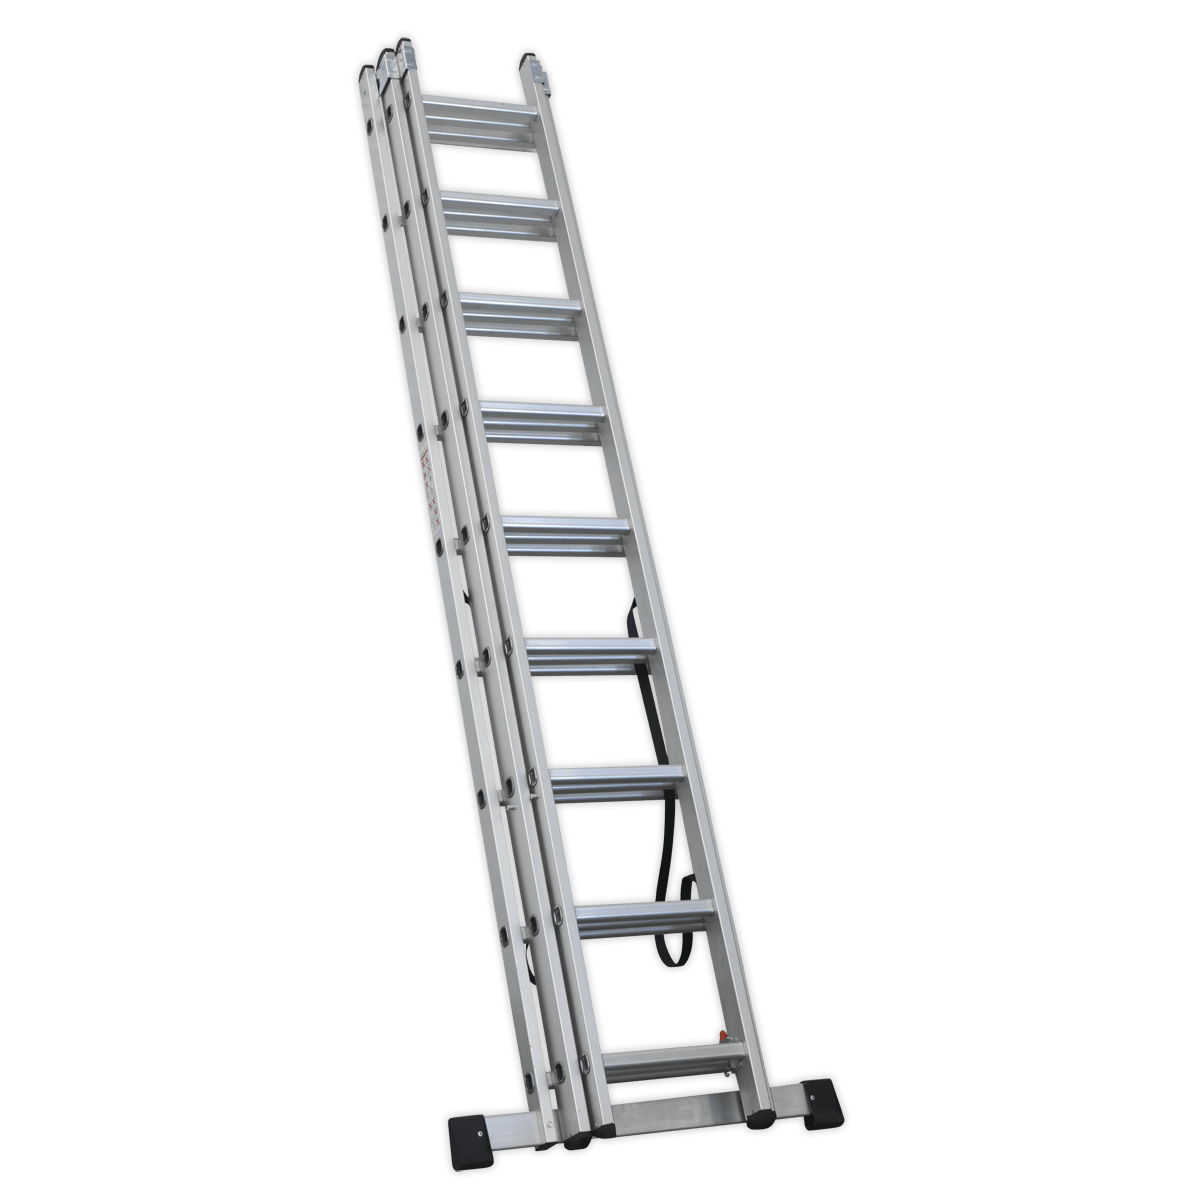 Sealey Acl3 Aluminium Extension Combination Ladder 3x9 En